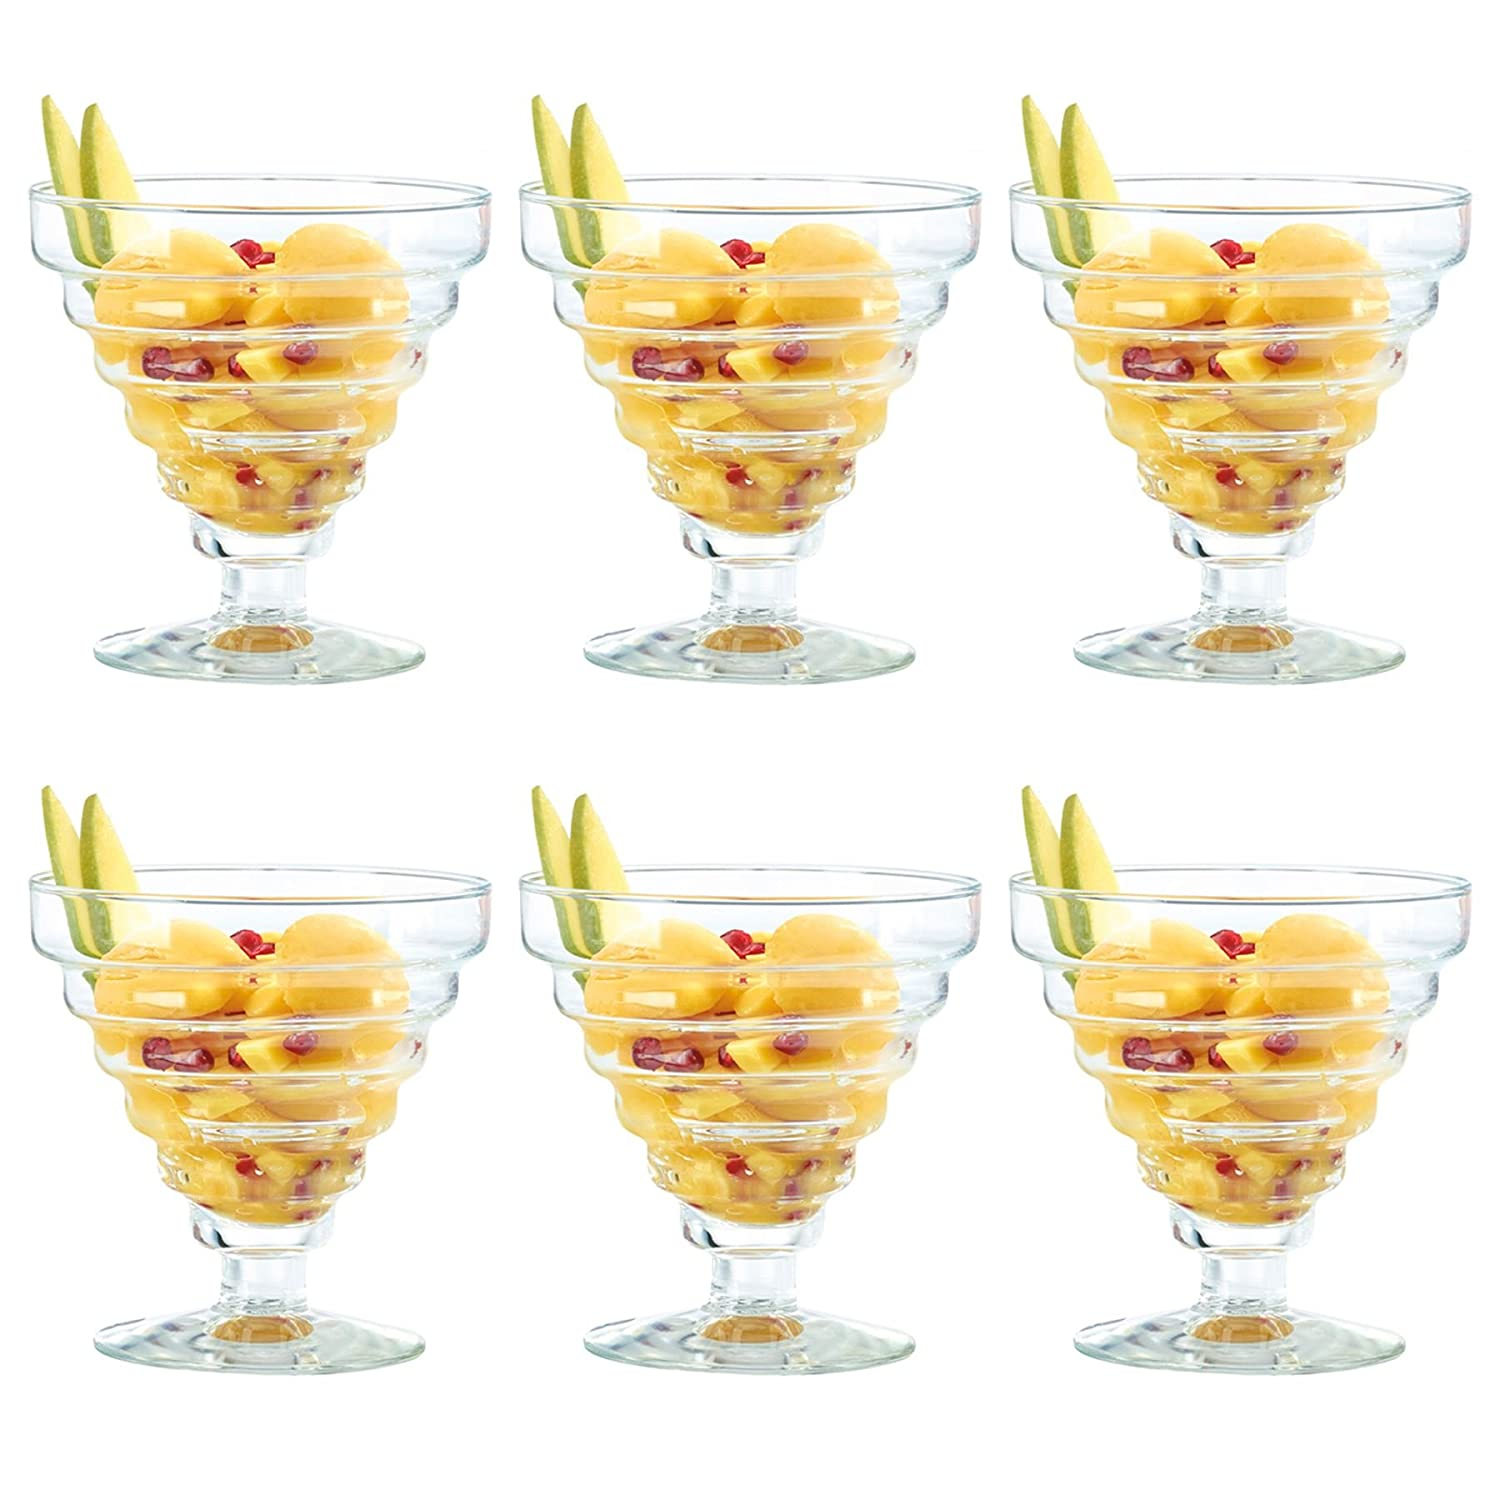 Durobor Etore Stemmed Sundae / Dessert / Ice Cream Glass Bowl - 360ml - Pack of 6 Glasses